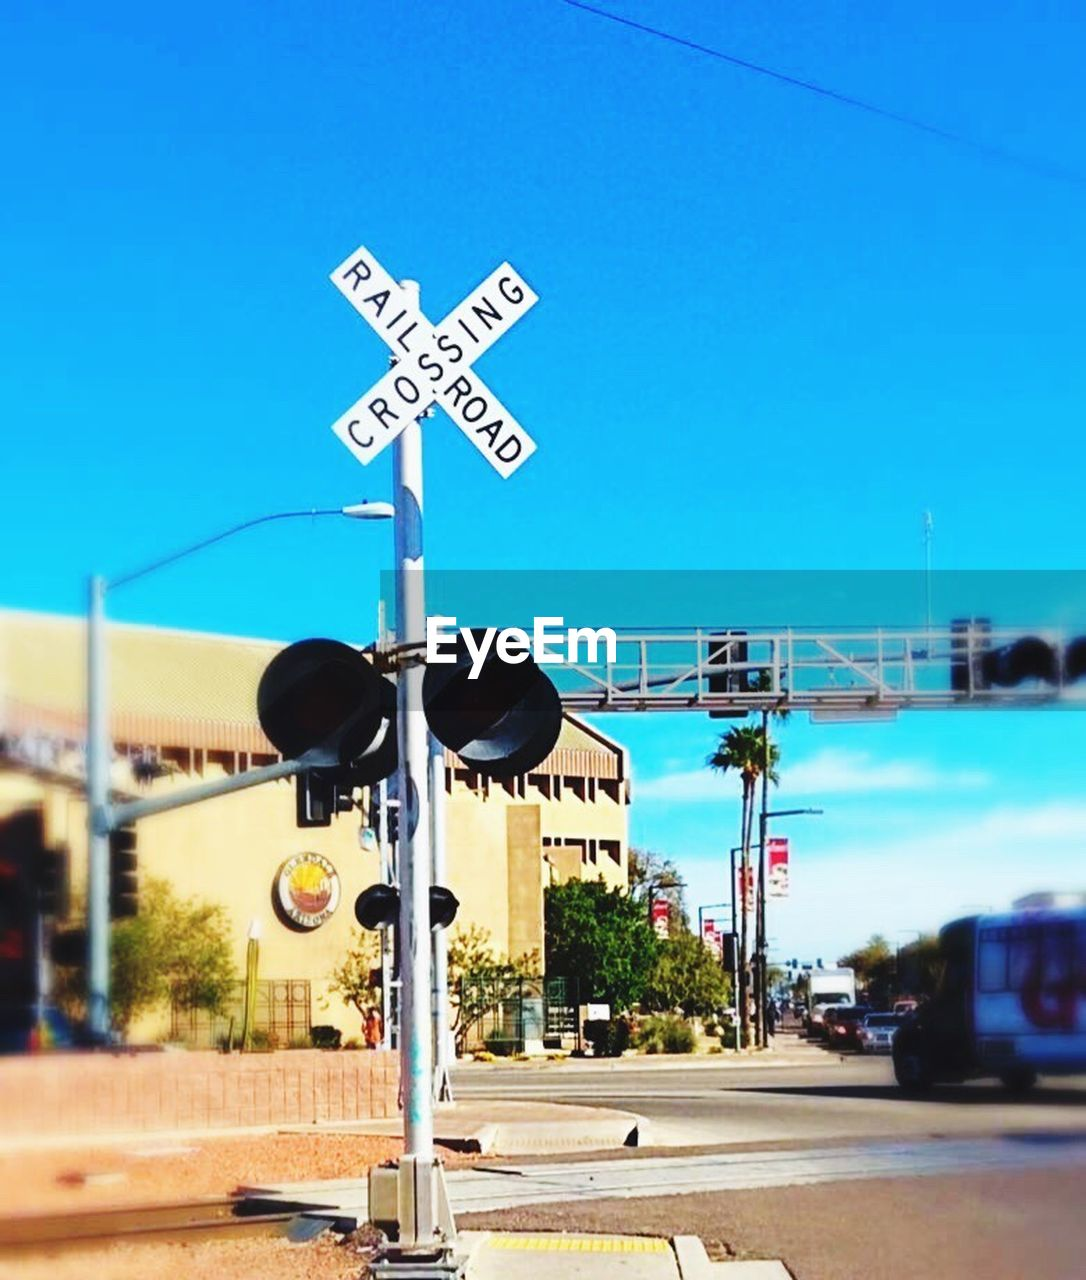 guidance, railroad crossing, crossing sign, road sign, transportation, railway signal, communication, blue, sky, day, outdoors, clear sky, one way, no people